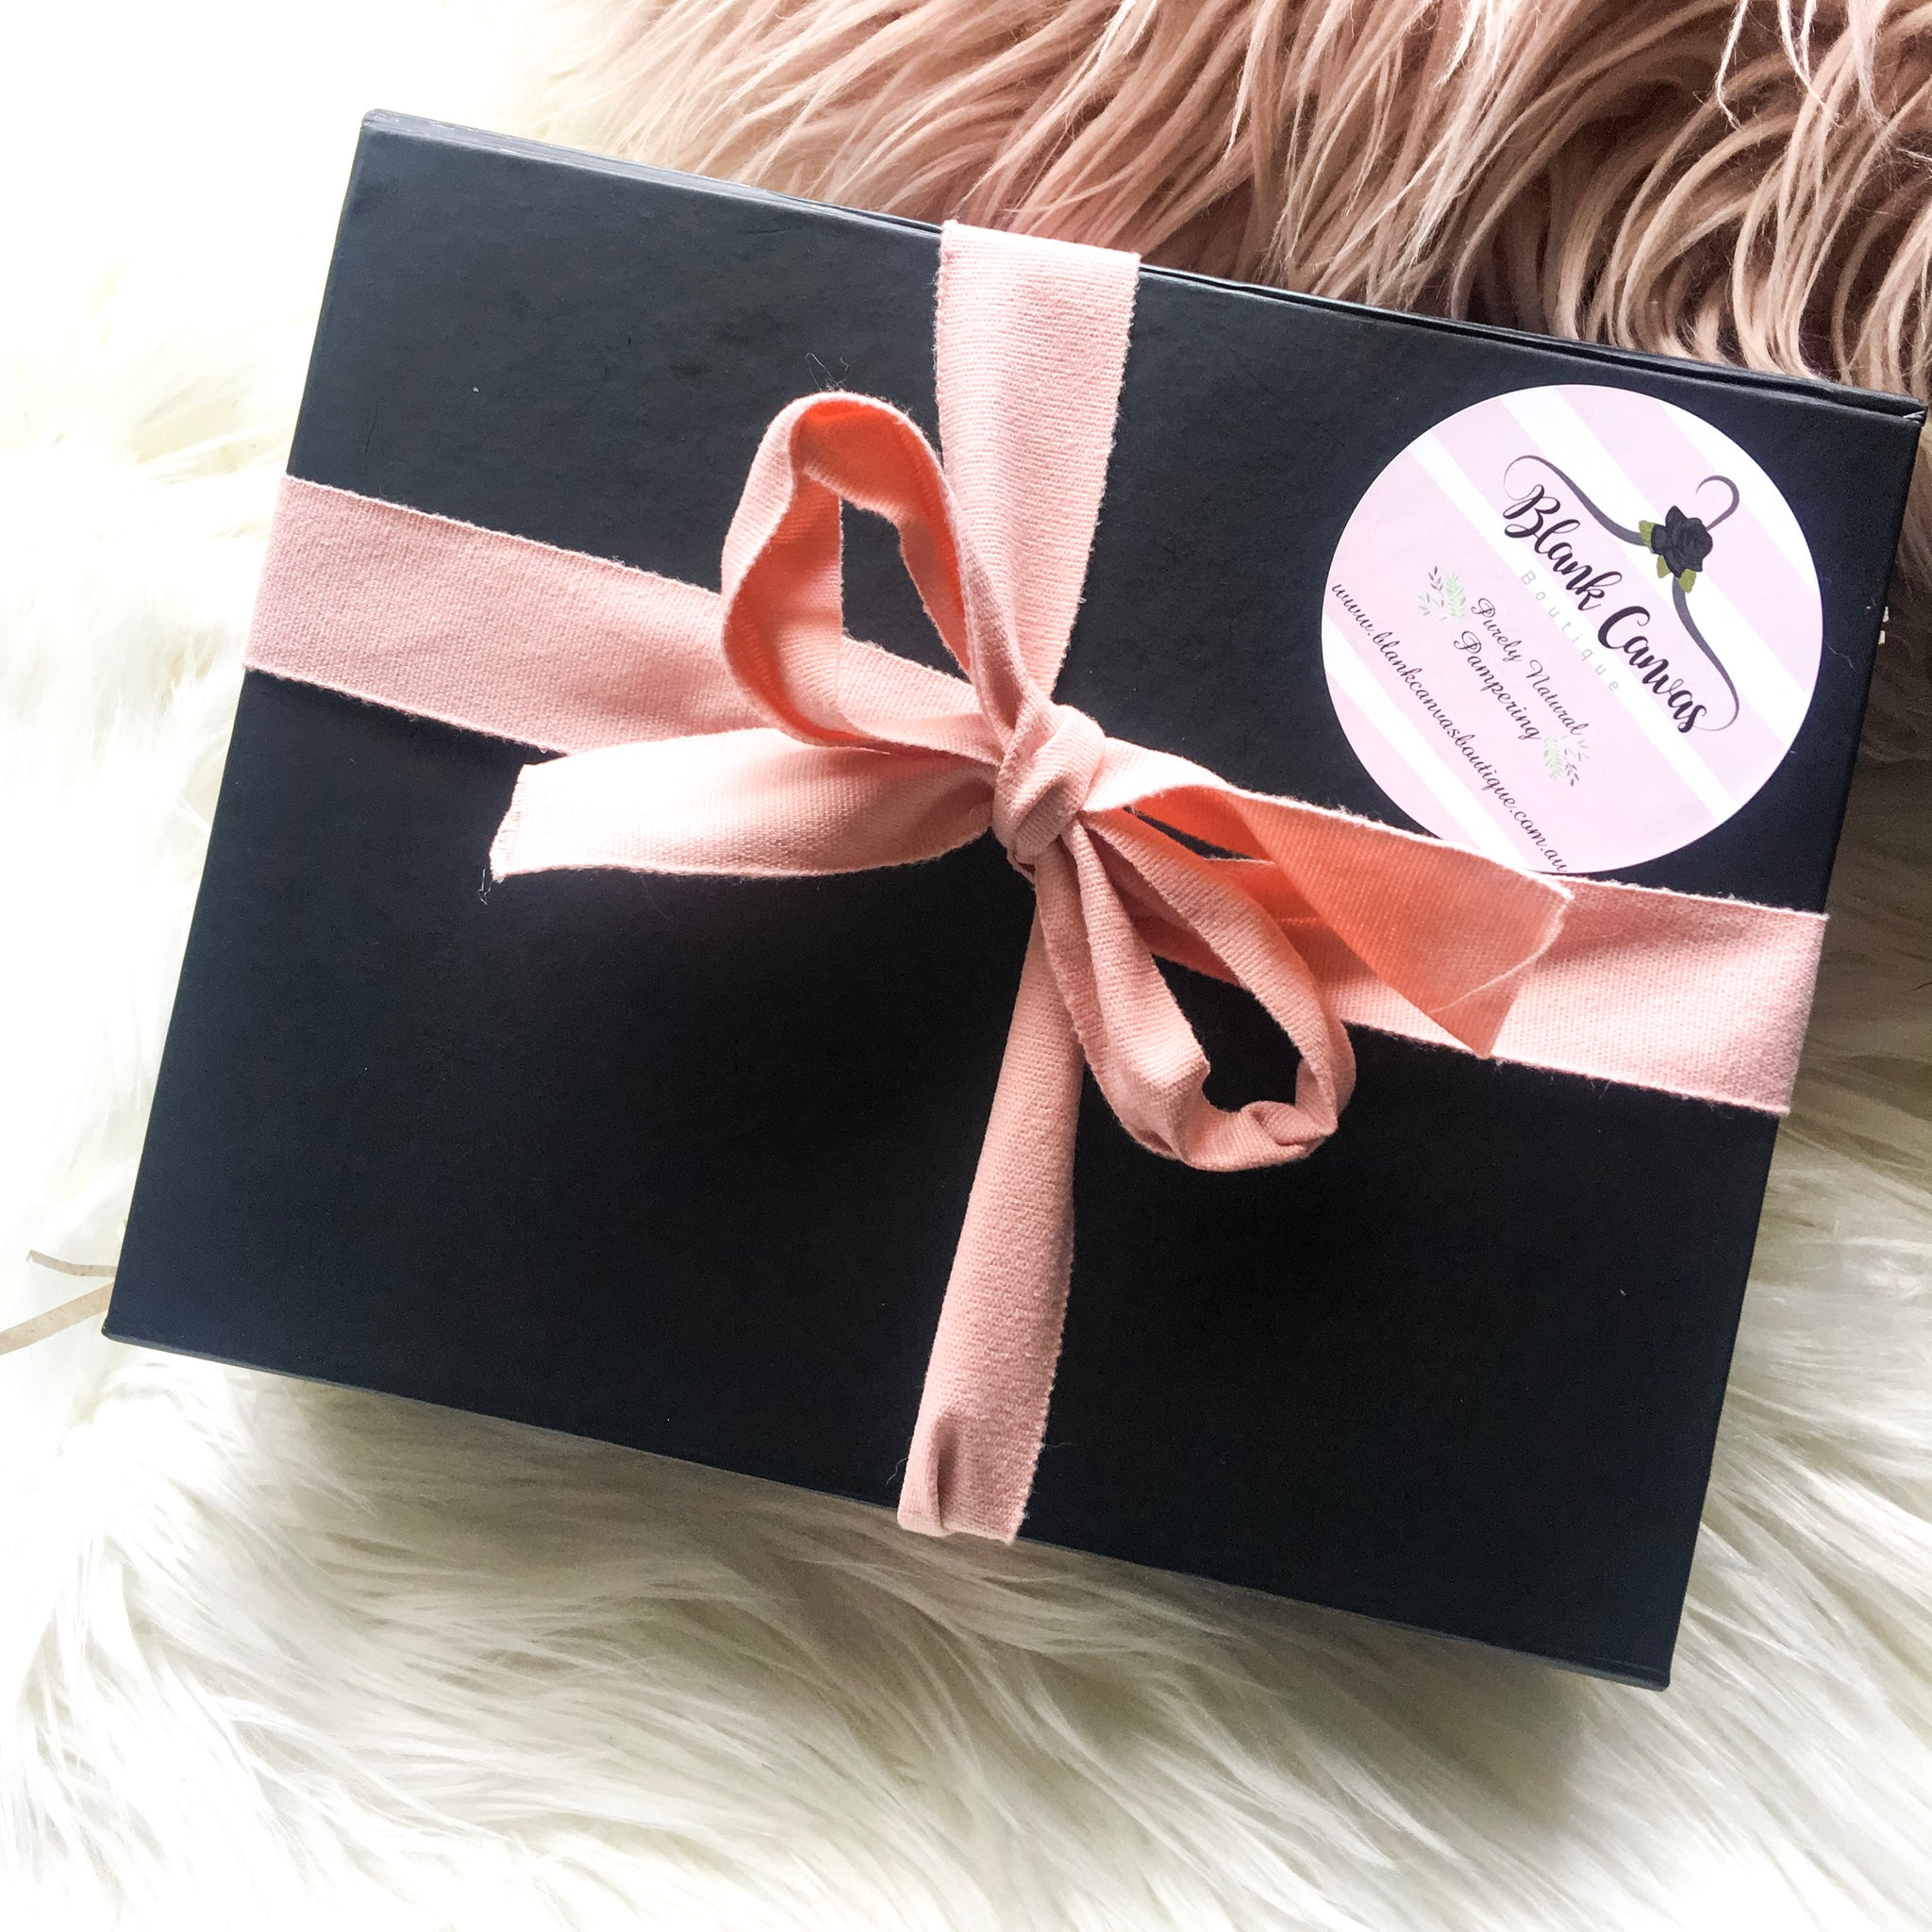 Limited Edition BCB Pamper Gift Box (customisable) PRE ORDER